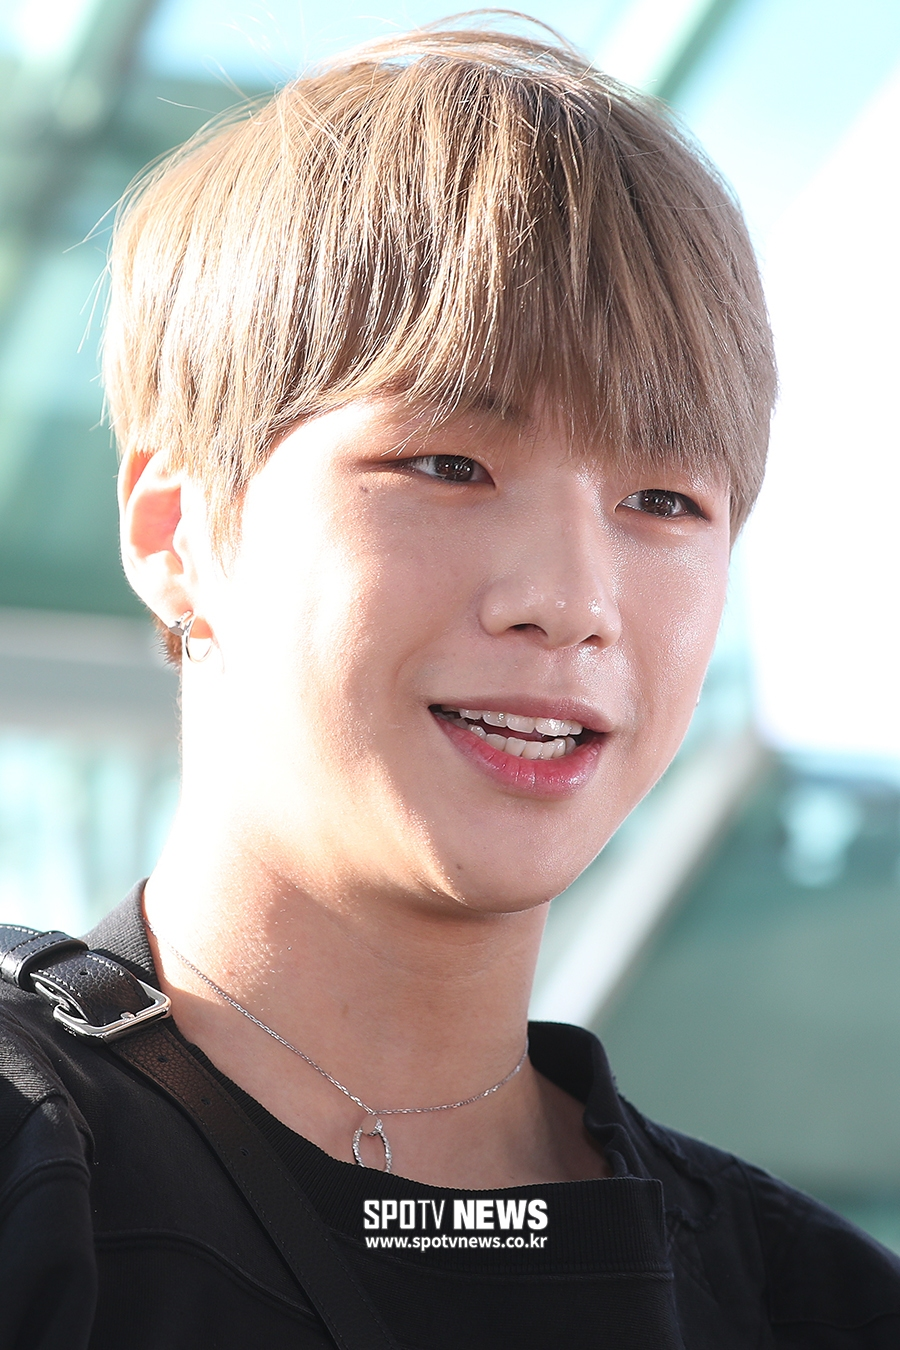 kang daniel dating news 11